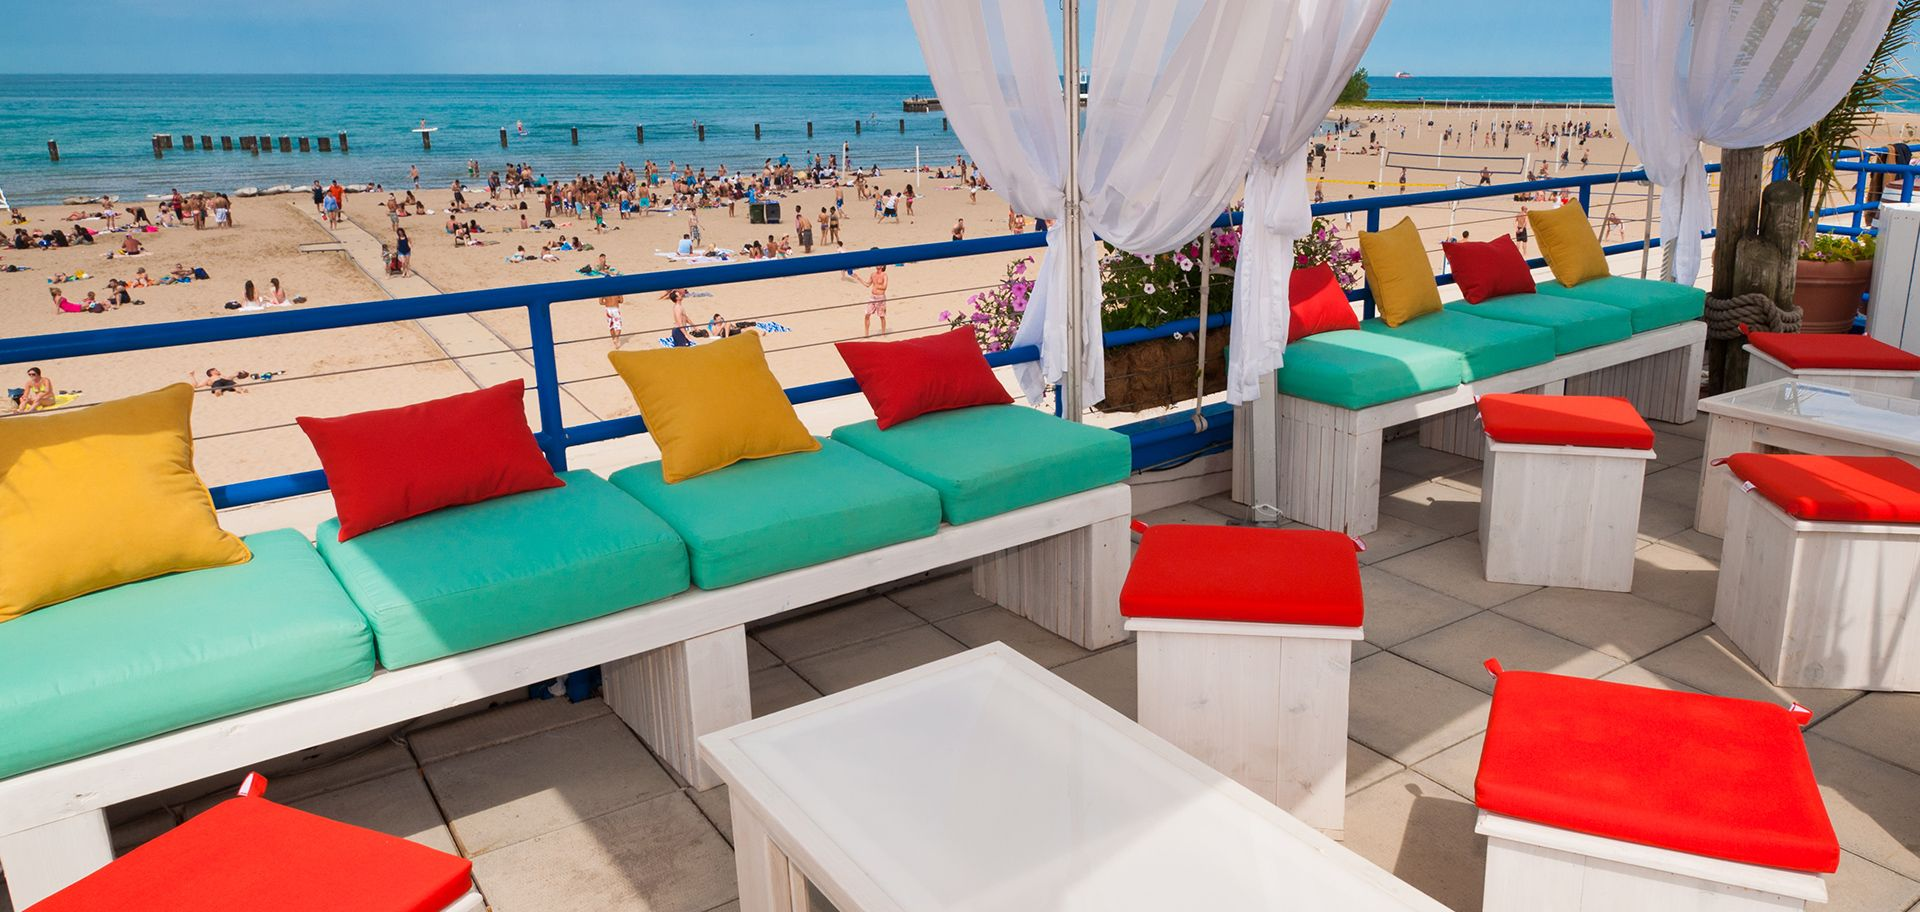 Castaways Bar And Grill Is The Best Beach On North Avenue In Chicago For Great Food Ice Cold Drinks